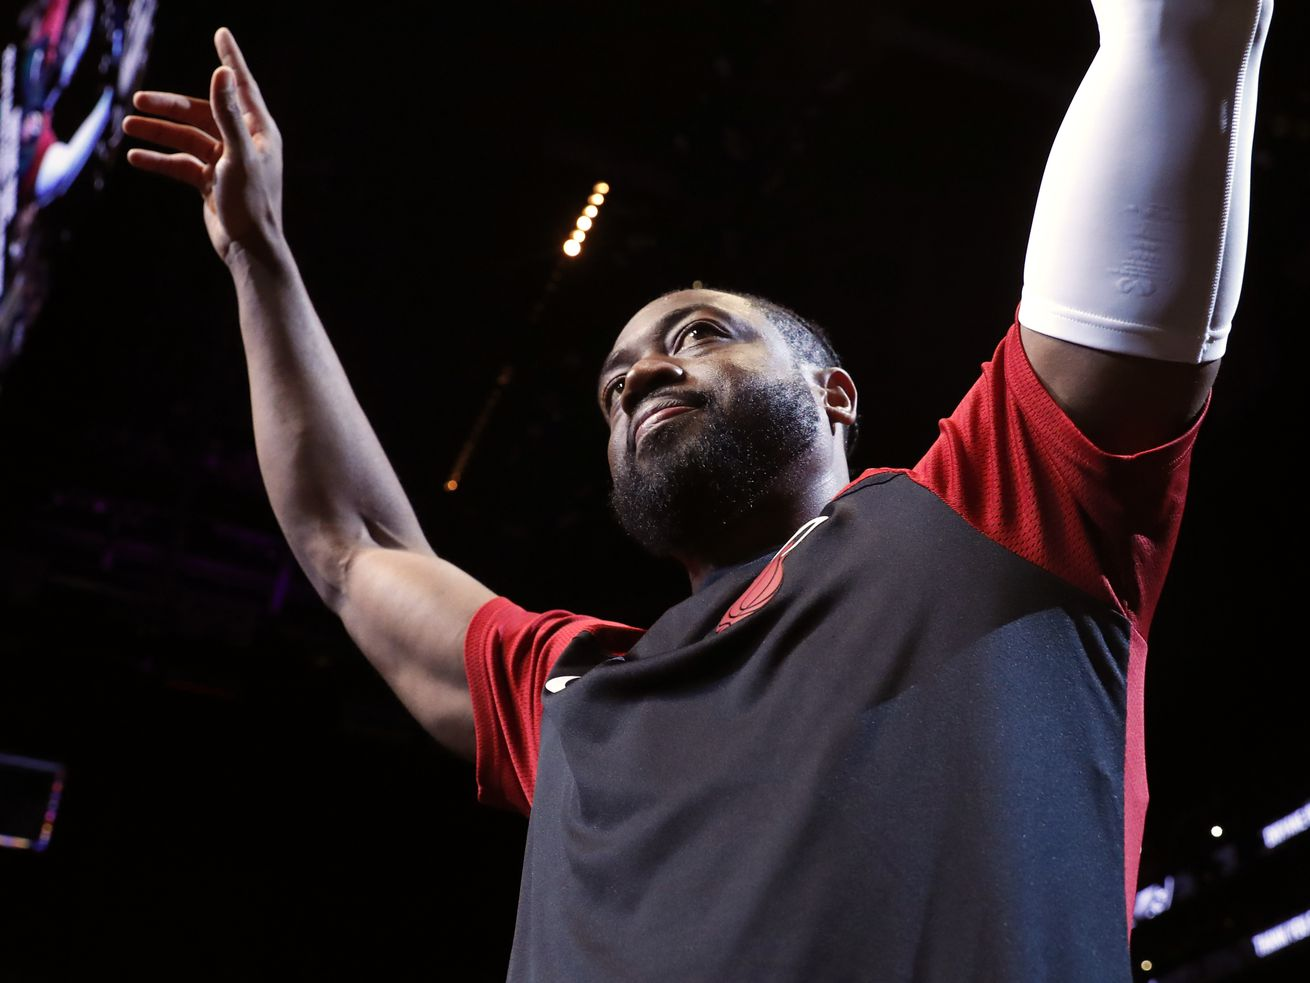 Miami Heat guard Dwyane Wade (3) acknowledges cheers from the crowd before the start of the final NBA basketball game of his career, against the Brooklyn Nets in New York. (AP Photo/Kathy Willens)